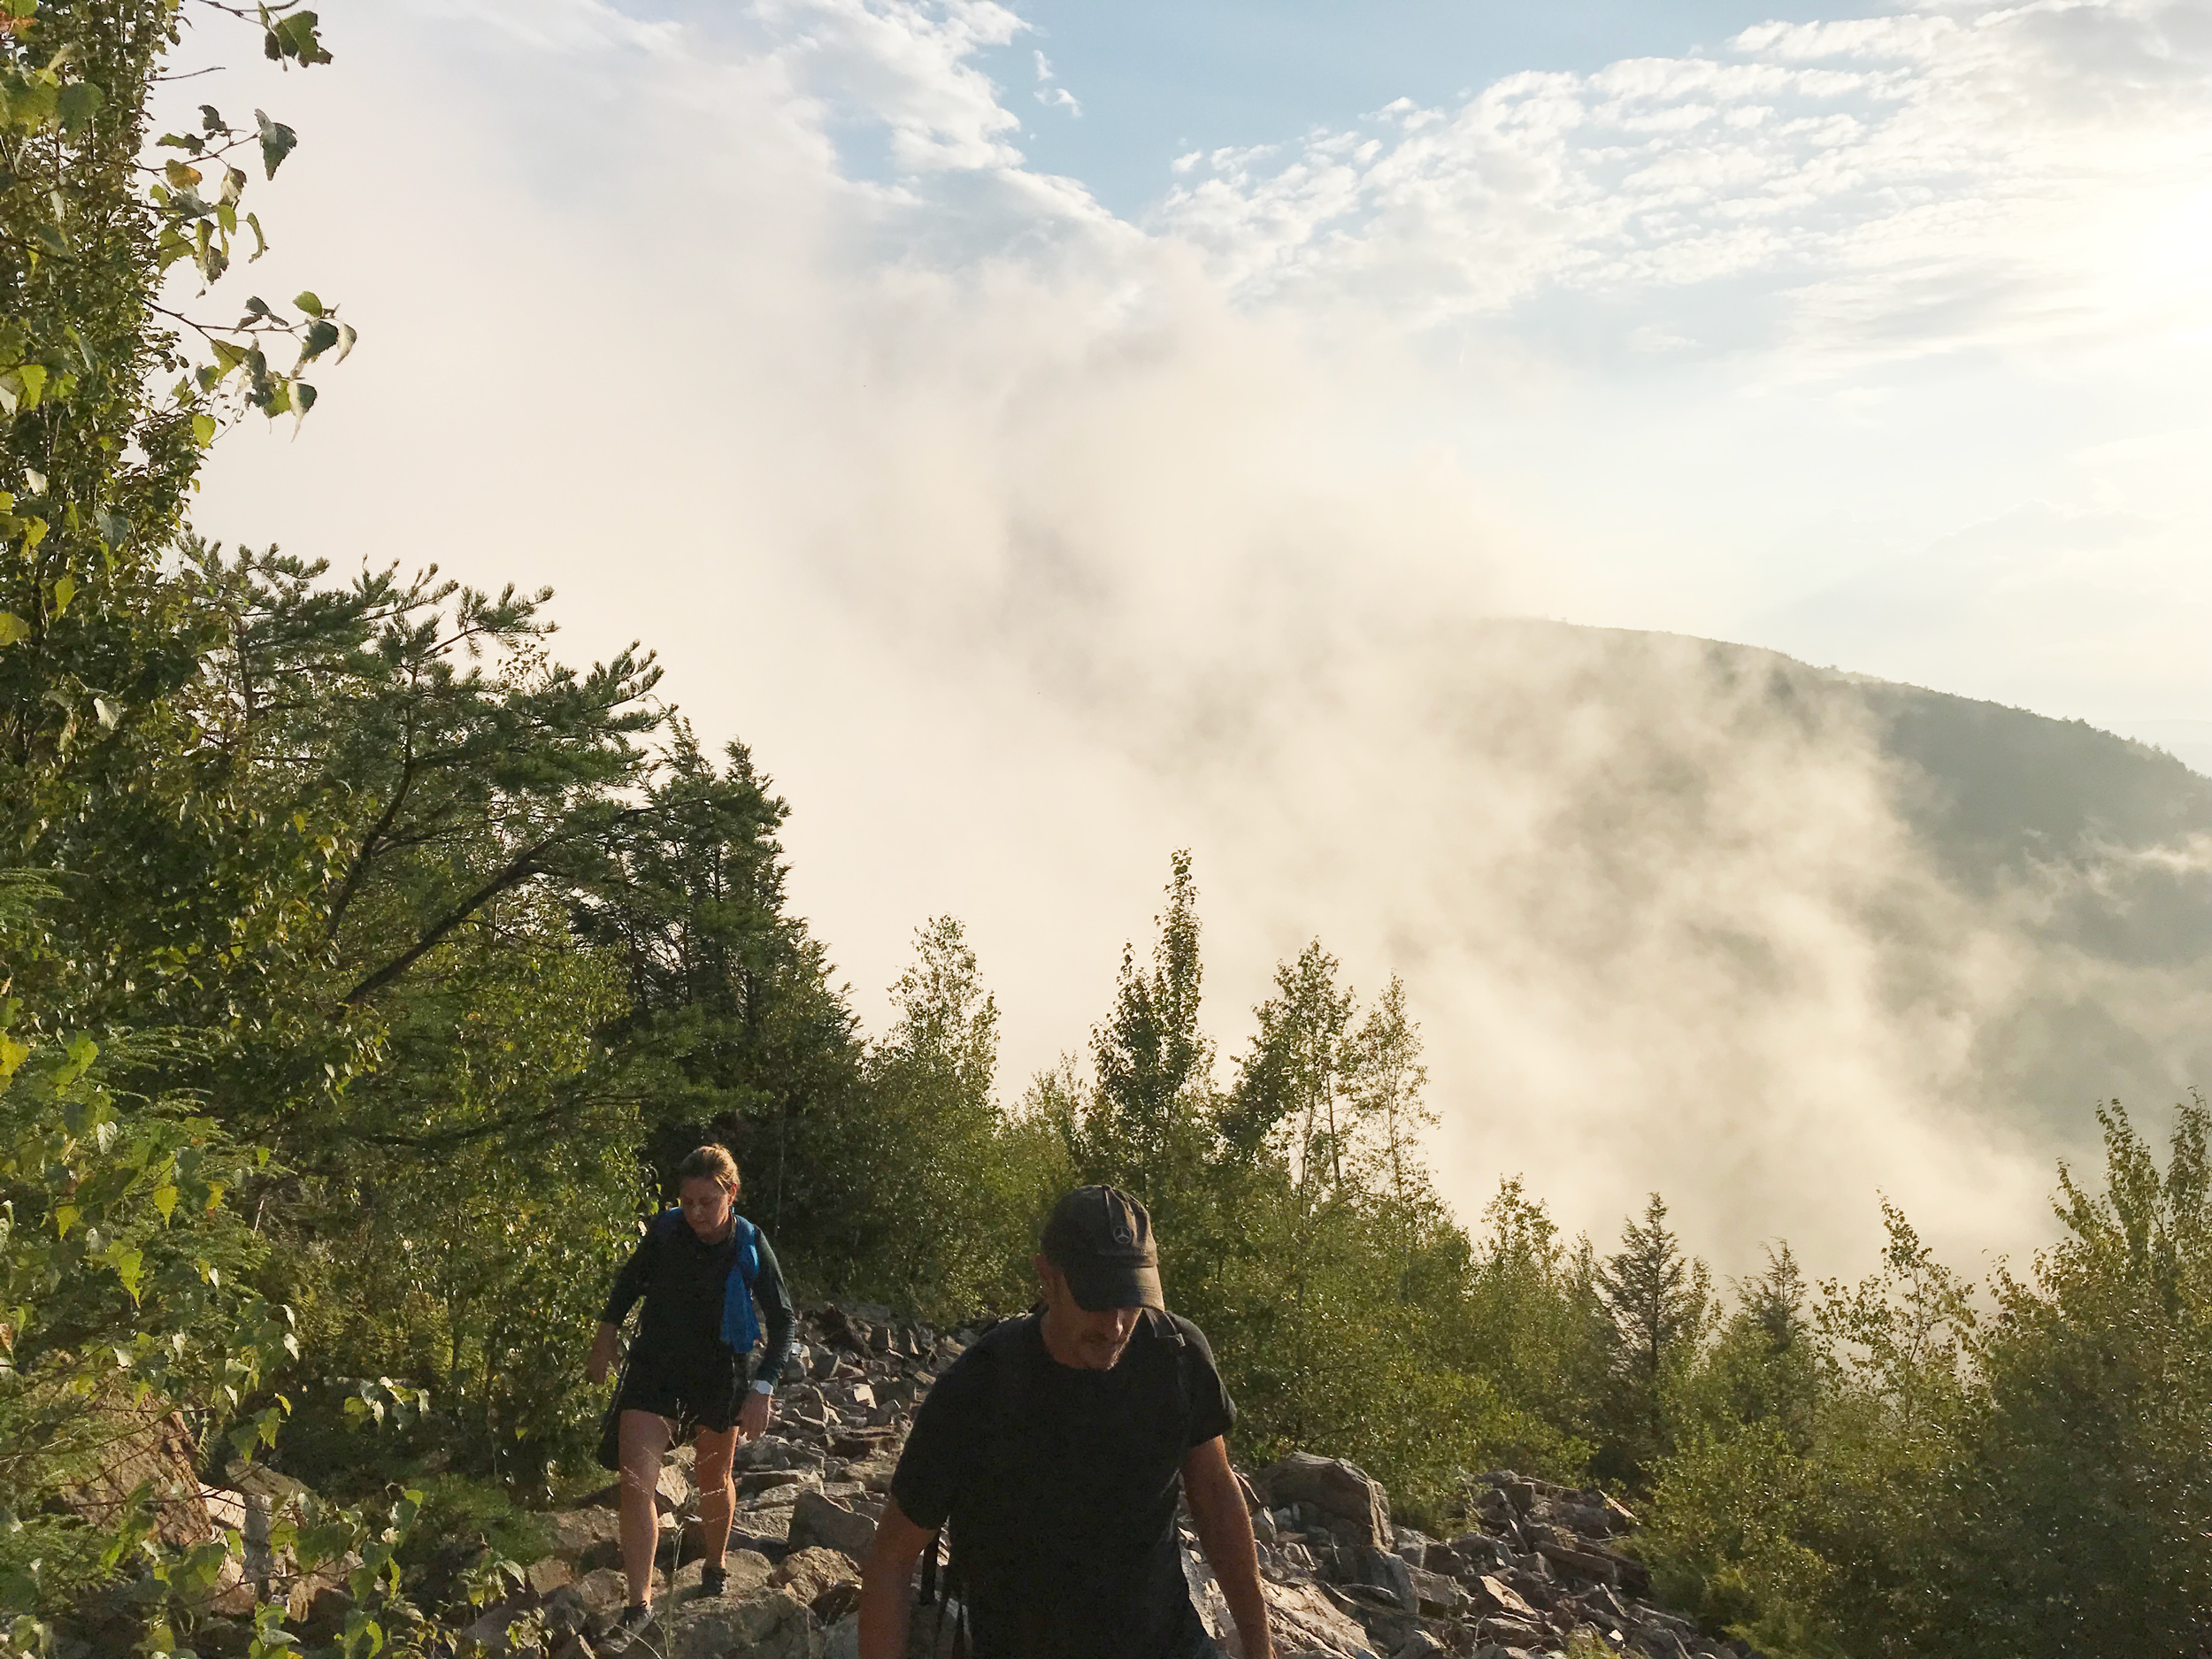 A group hiking with clouds in the background